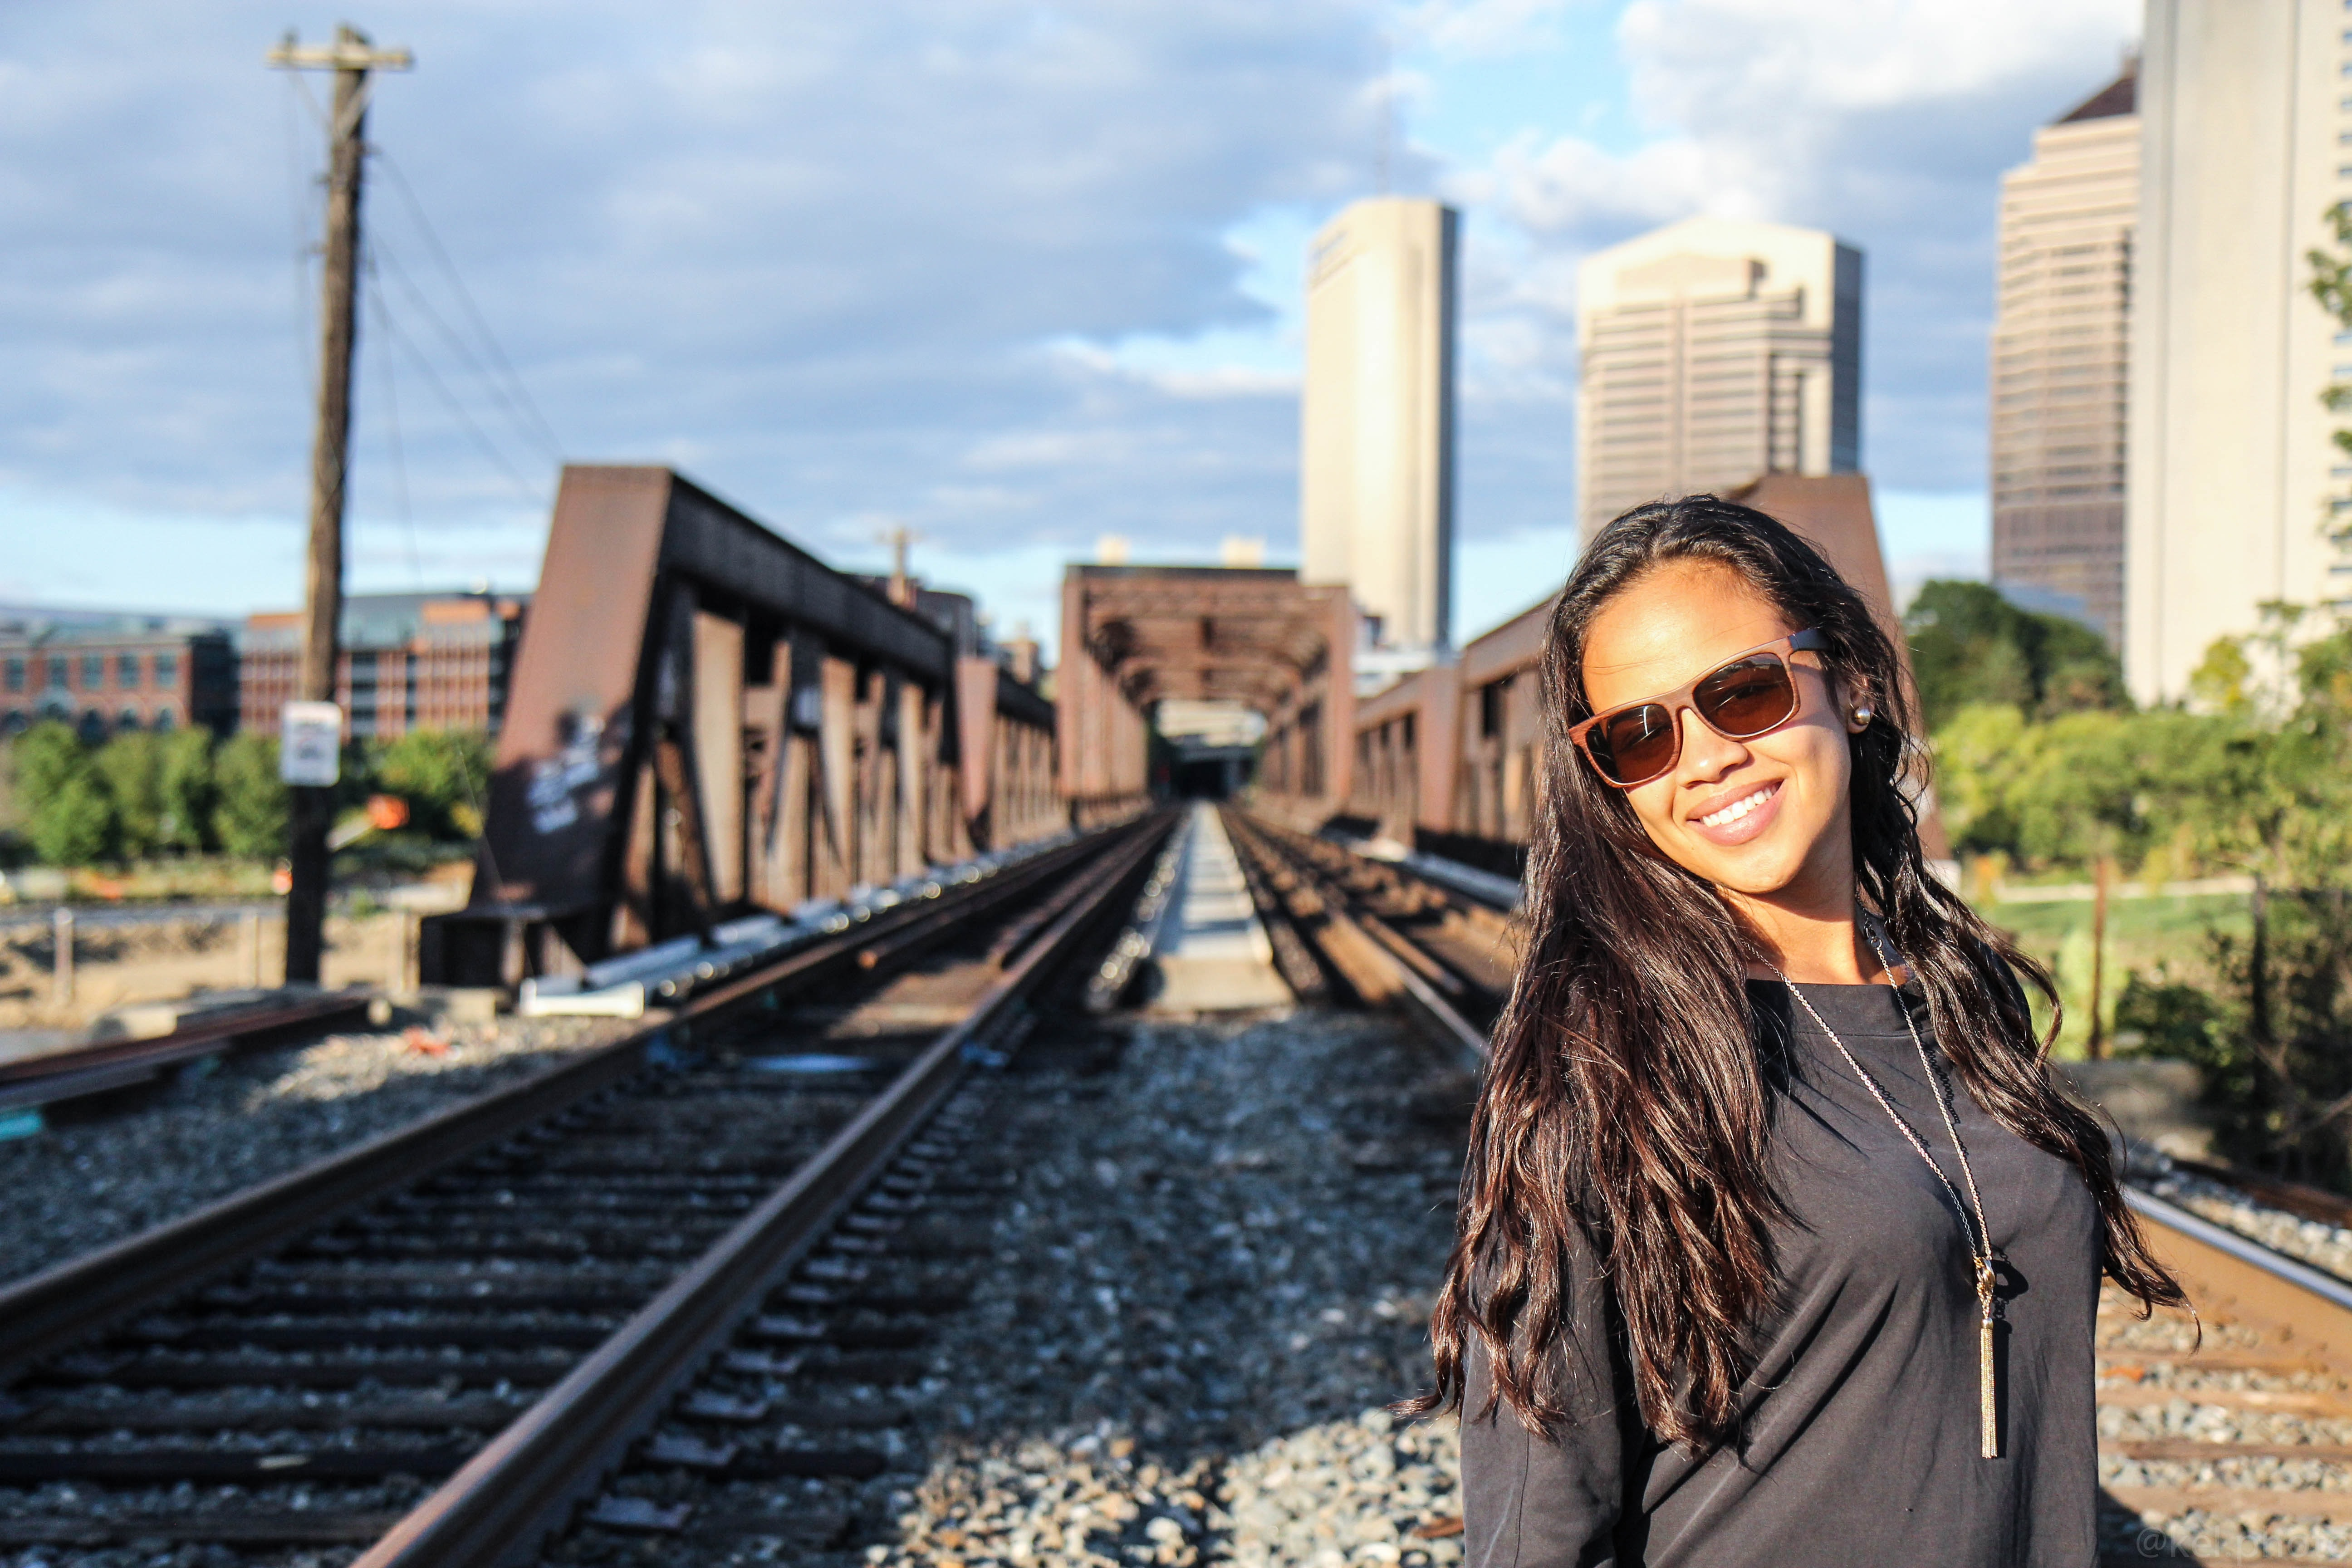 Woman in sunglasses with a long necklace smiles in front of train tracks in the city